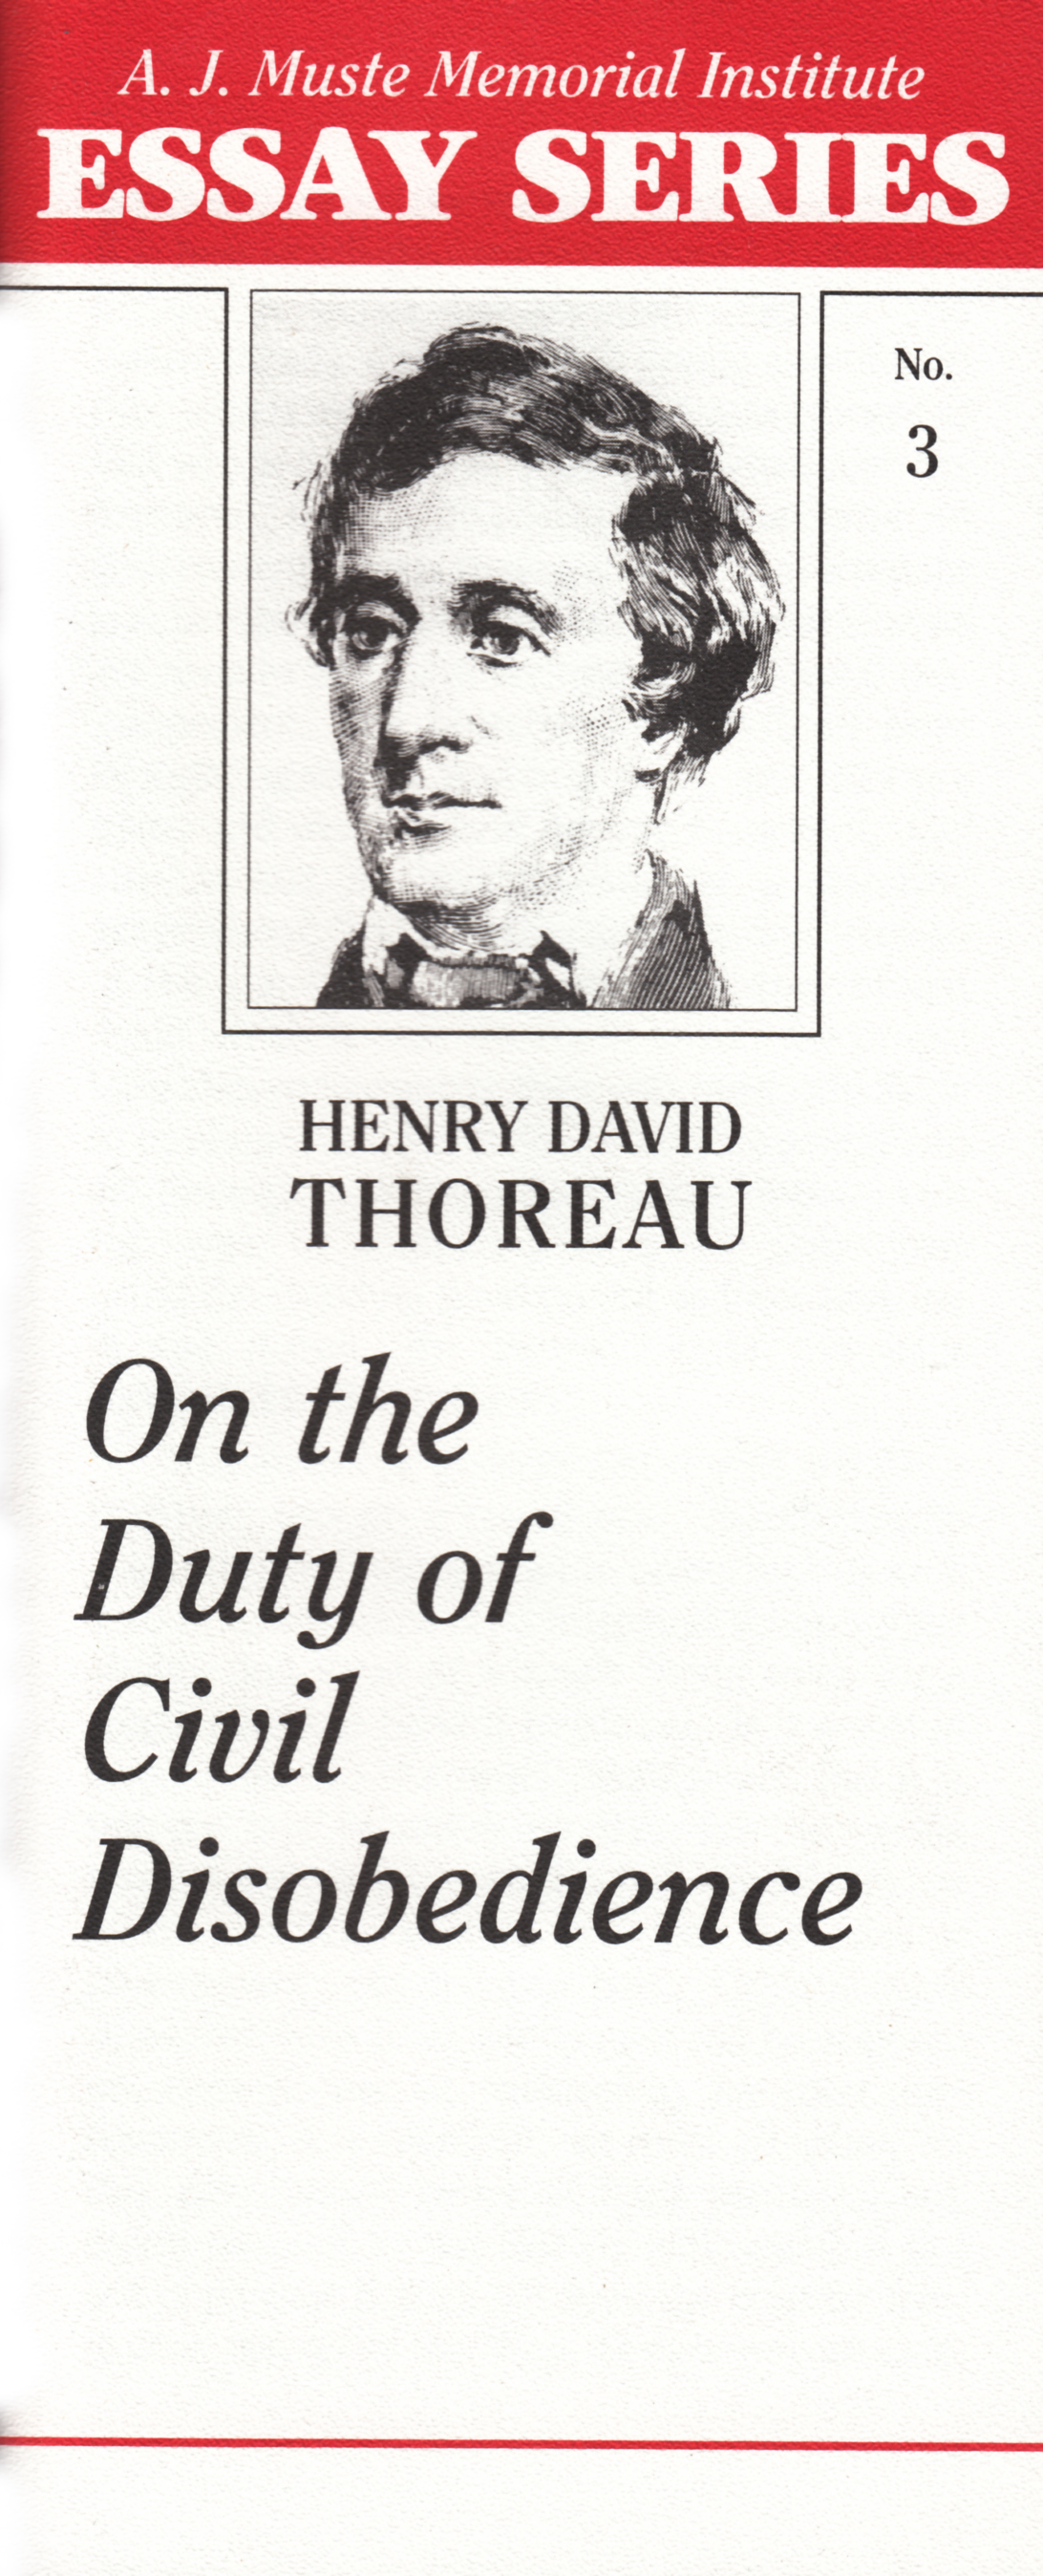 thoreau essay an essay about family ralph waldo emerson s essay on thoreau reissue paperback